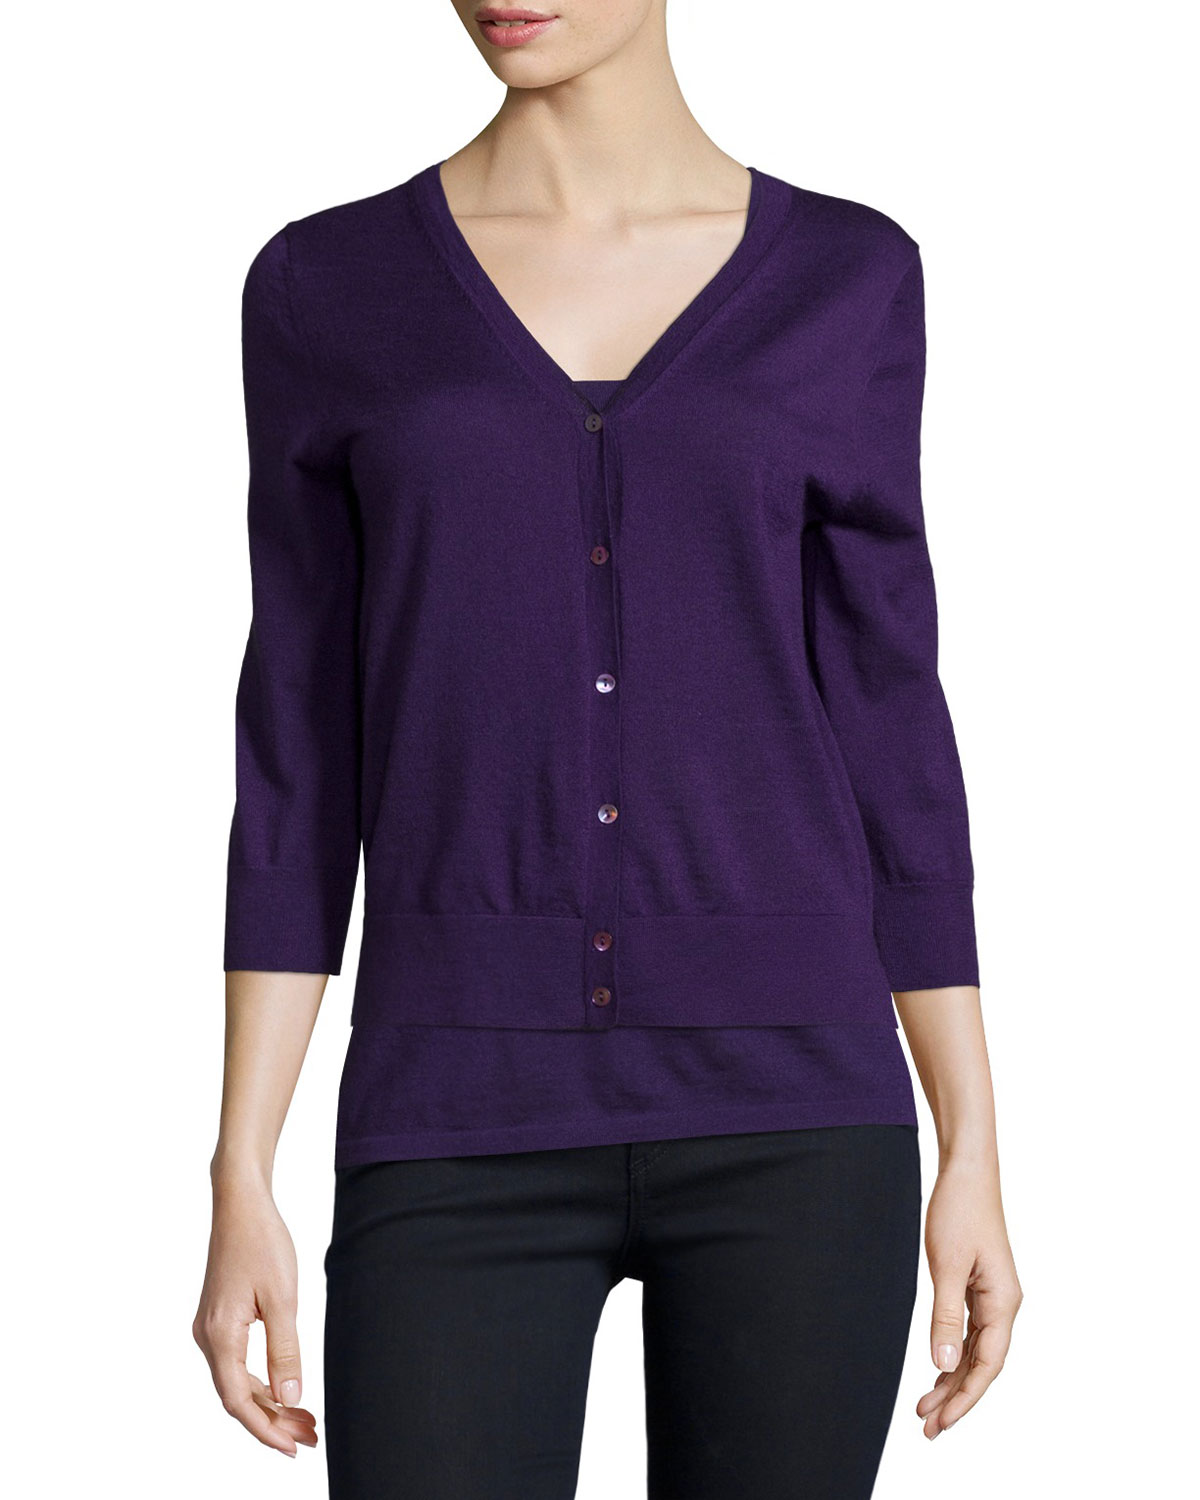 Modern Cashmere Superfine V-Neck Cardigan, Size: LARGE, Black - Neiman Marcus Cashmere Collection